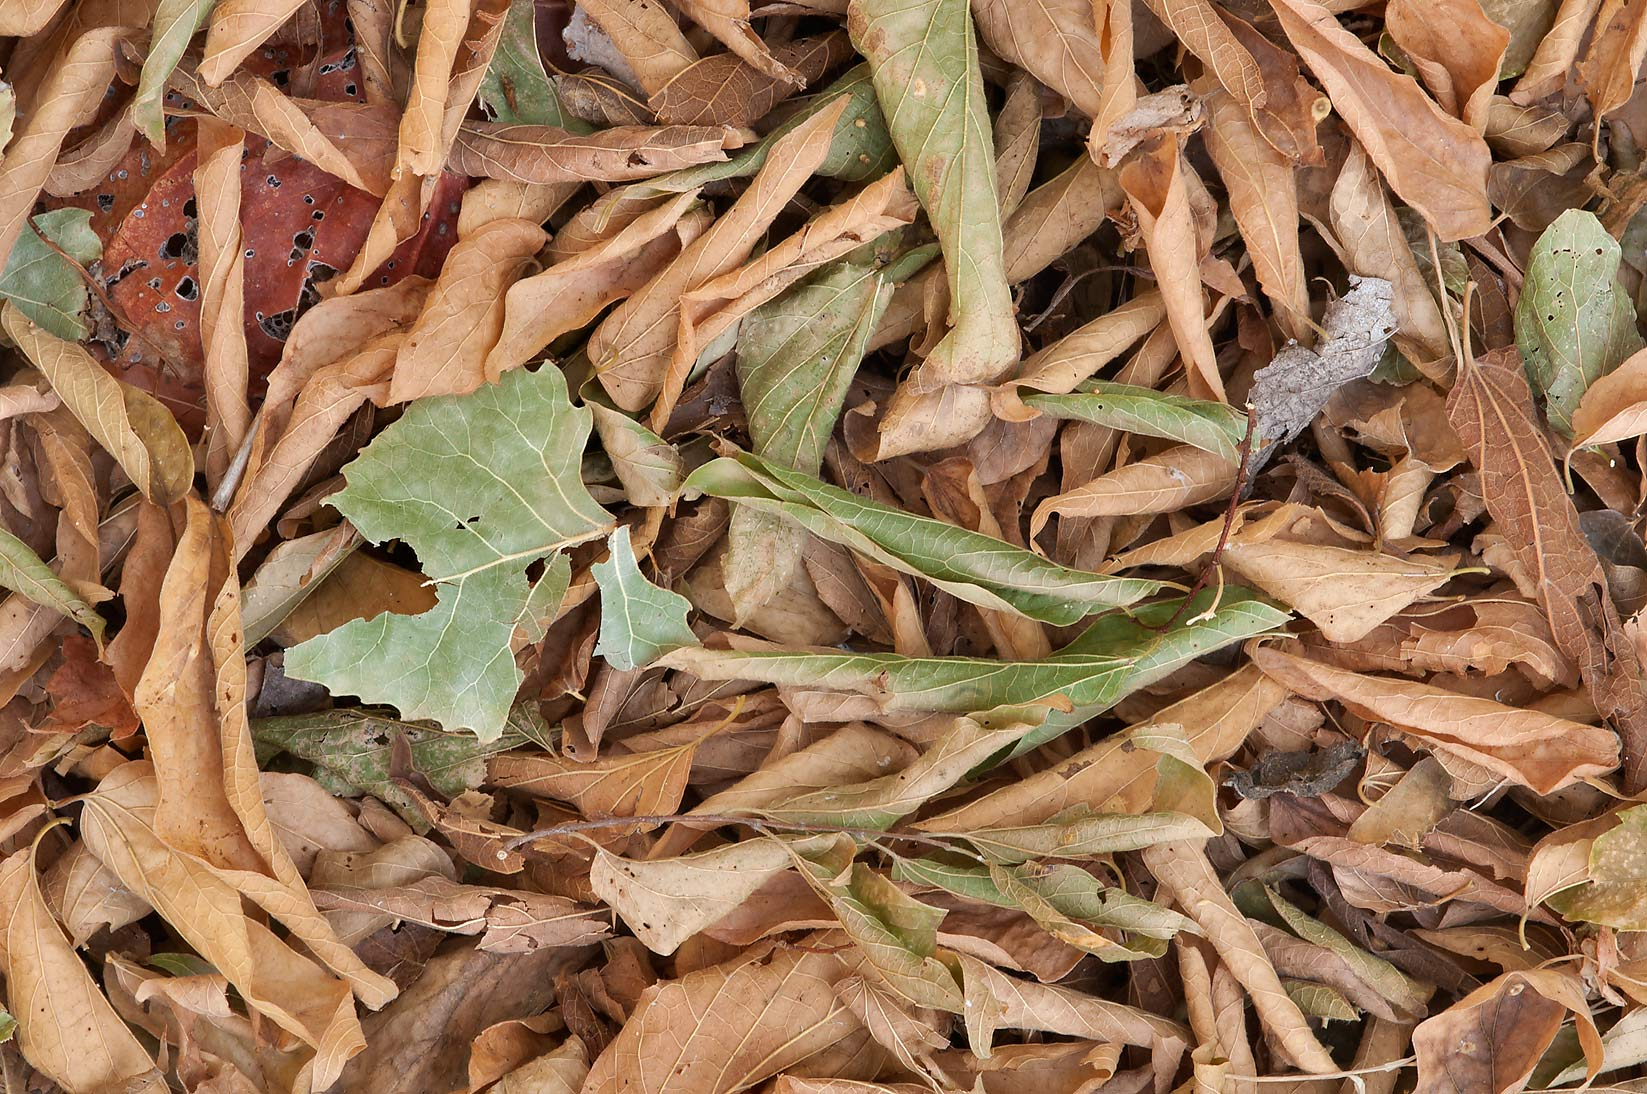 Wilted brown leaves in Washington-on-the-Brazos State Historic Site. Washington, Texas